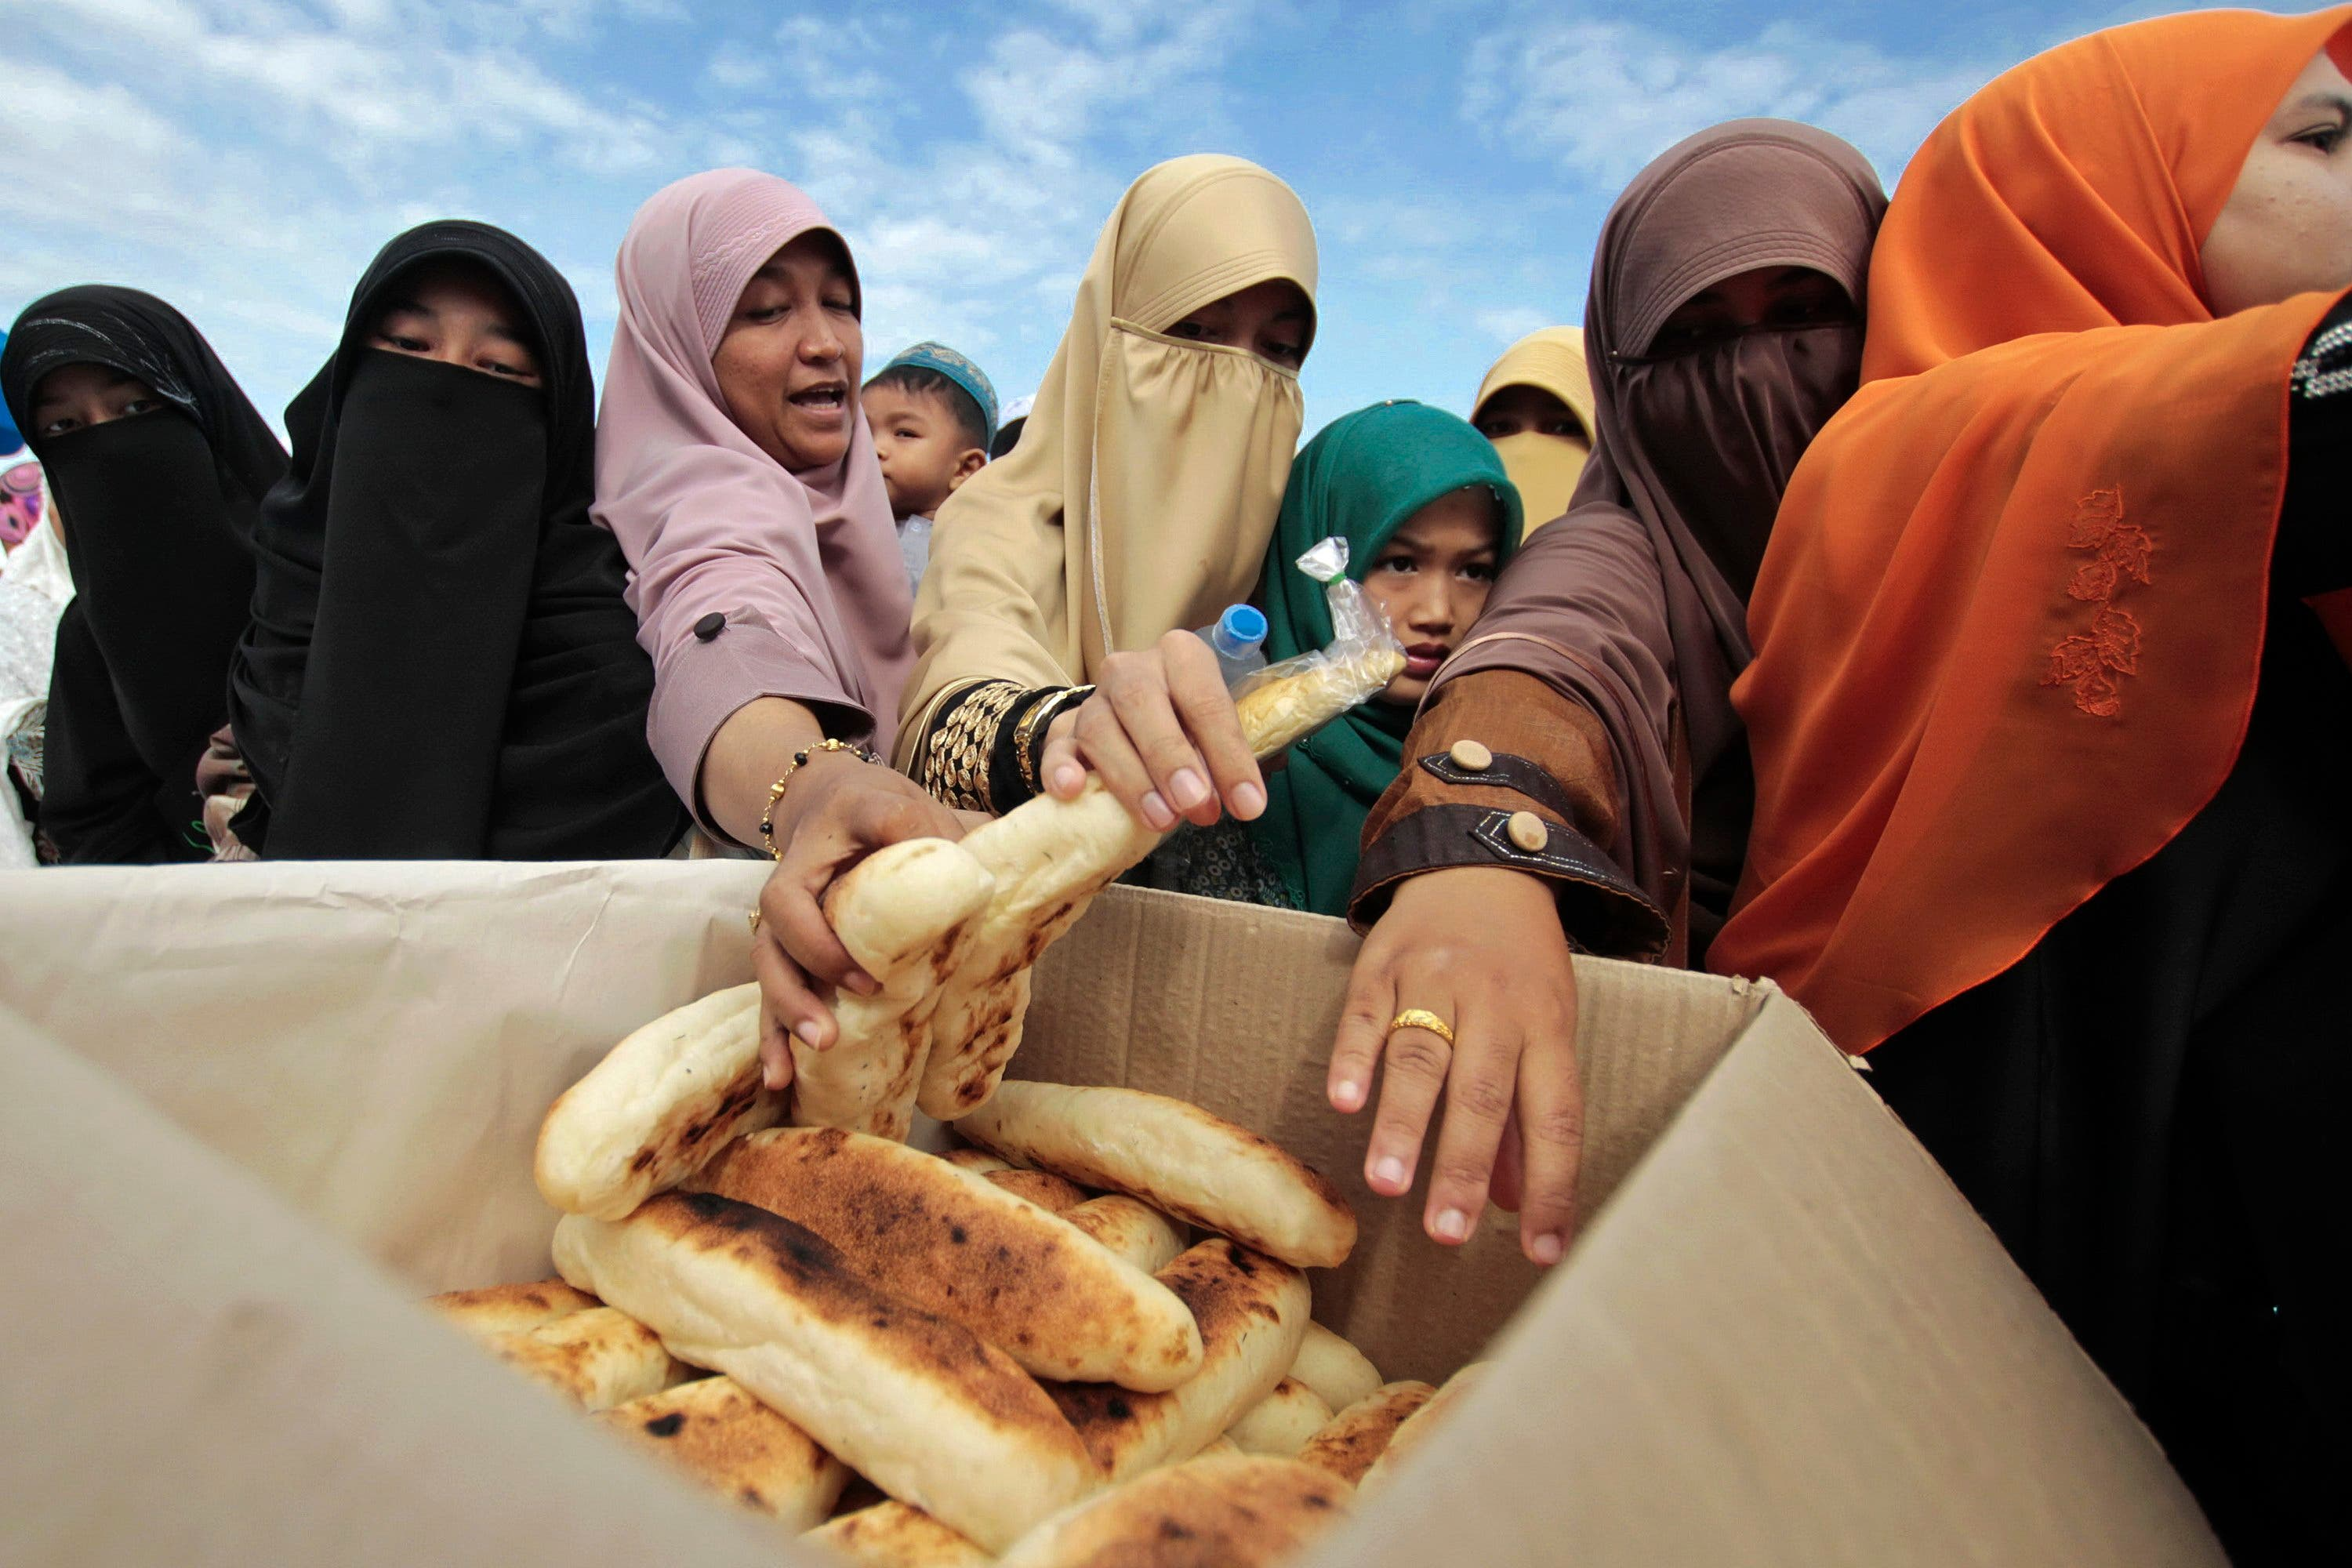 THAILAND:  Food is distributed to people who have gathered for morning prayer on Eid al-Adha in the southern Yala province October 15, 2013.